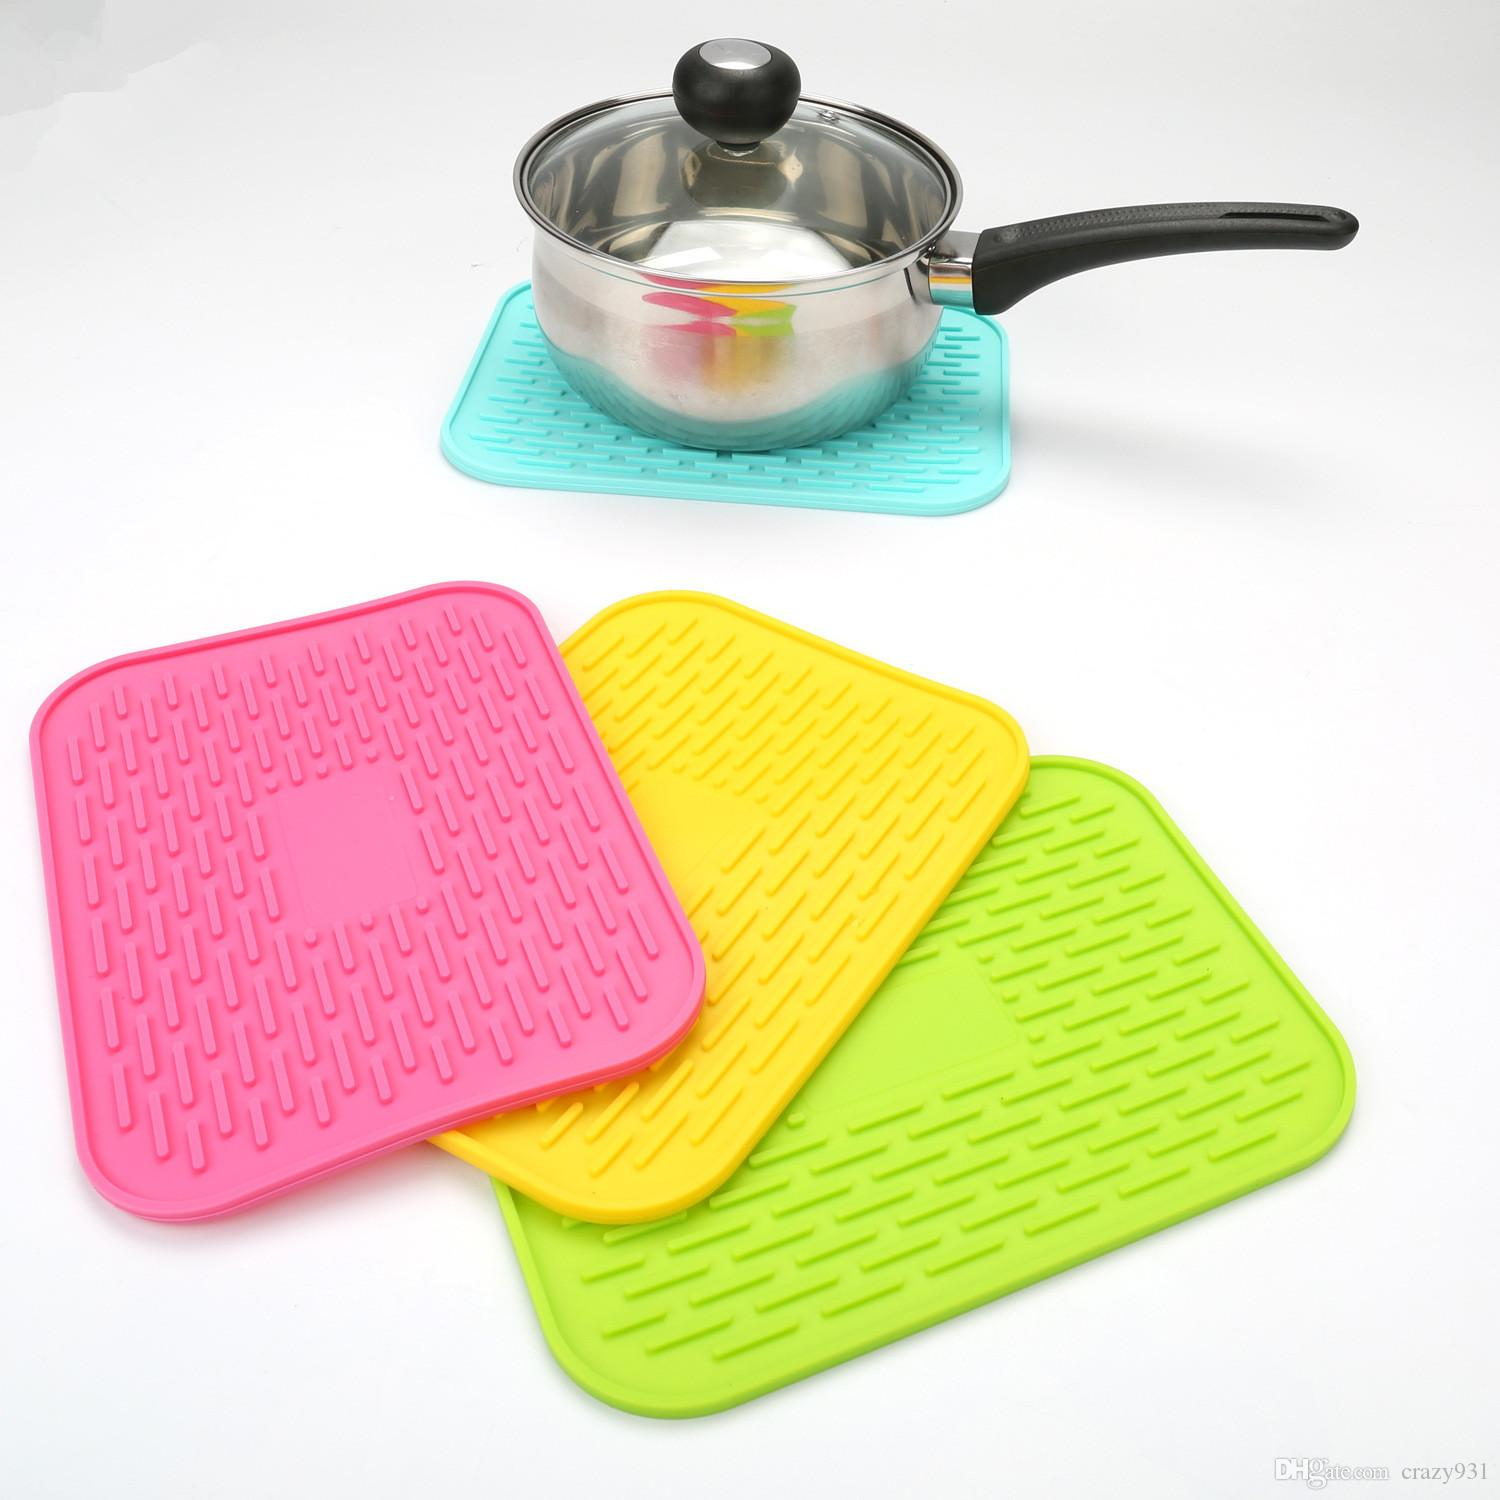 2017 Wholesale Heatproof Mat Pads Silicone Multifunction  : wholesale heatproof mat pads silicone multifunction from www.dhgate.com size 1500 x 1500 jpeg 121kB